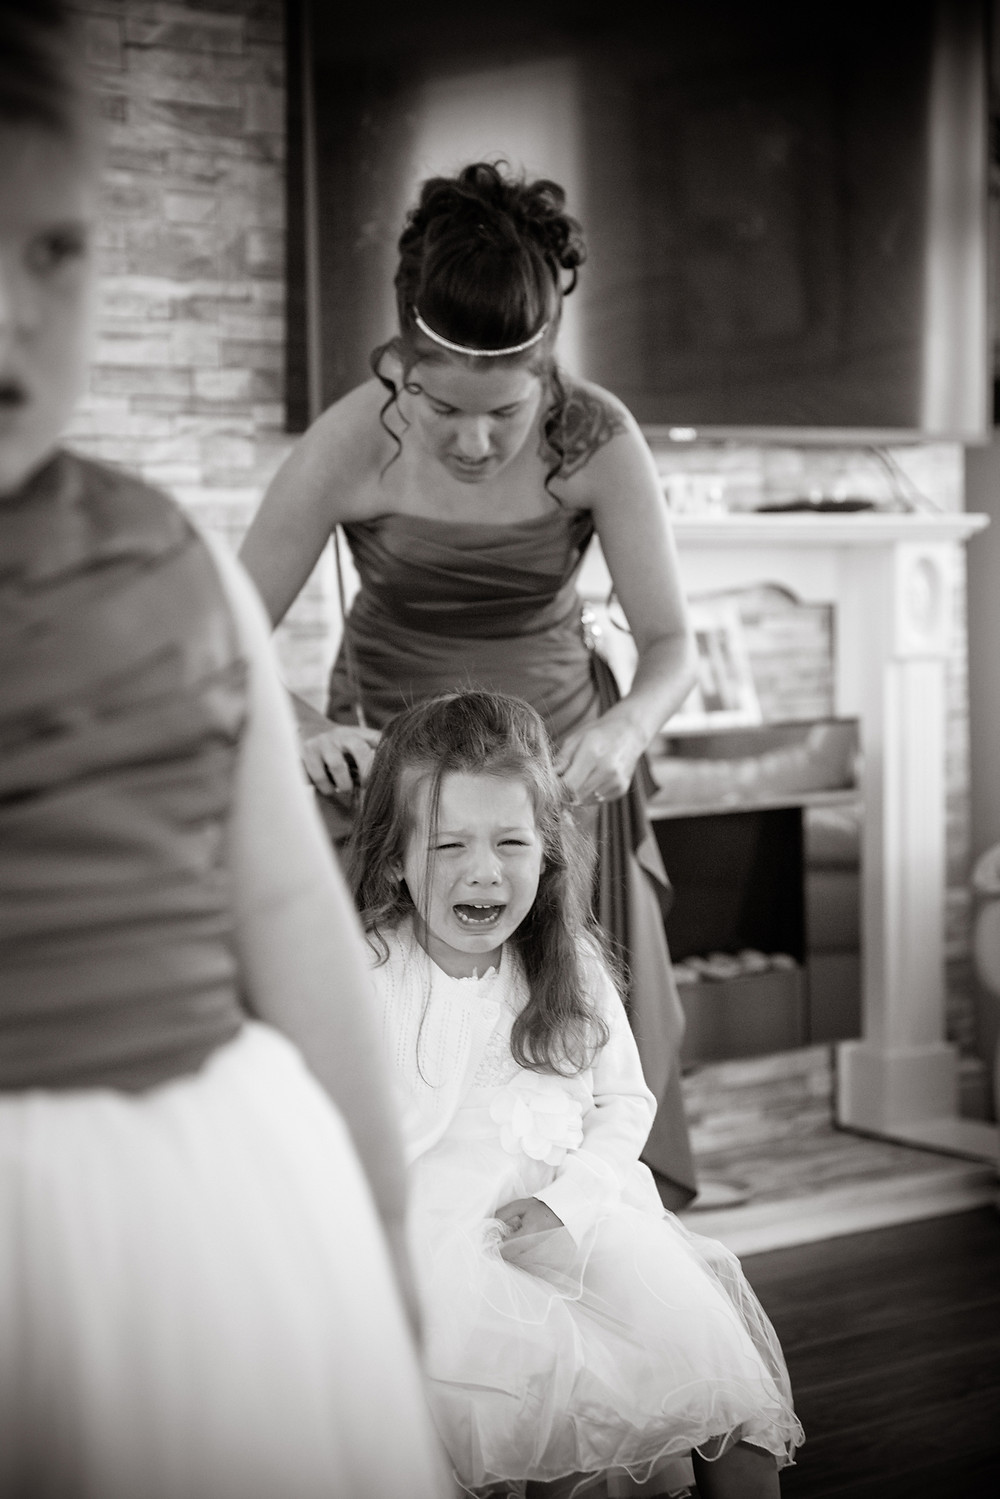 Having her hair done for the wedding day